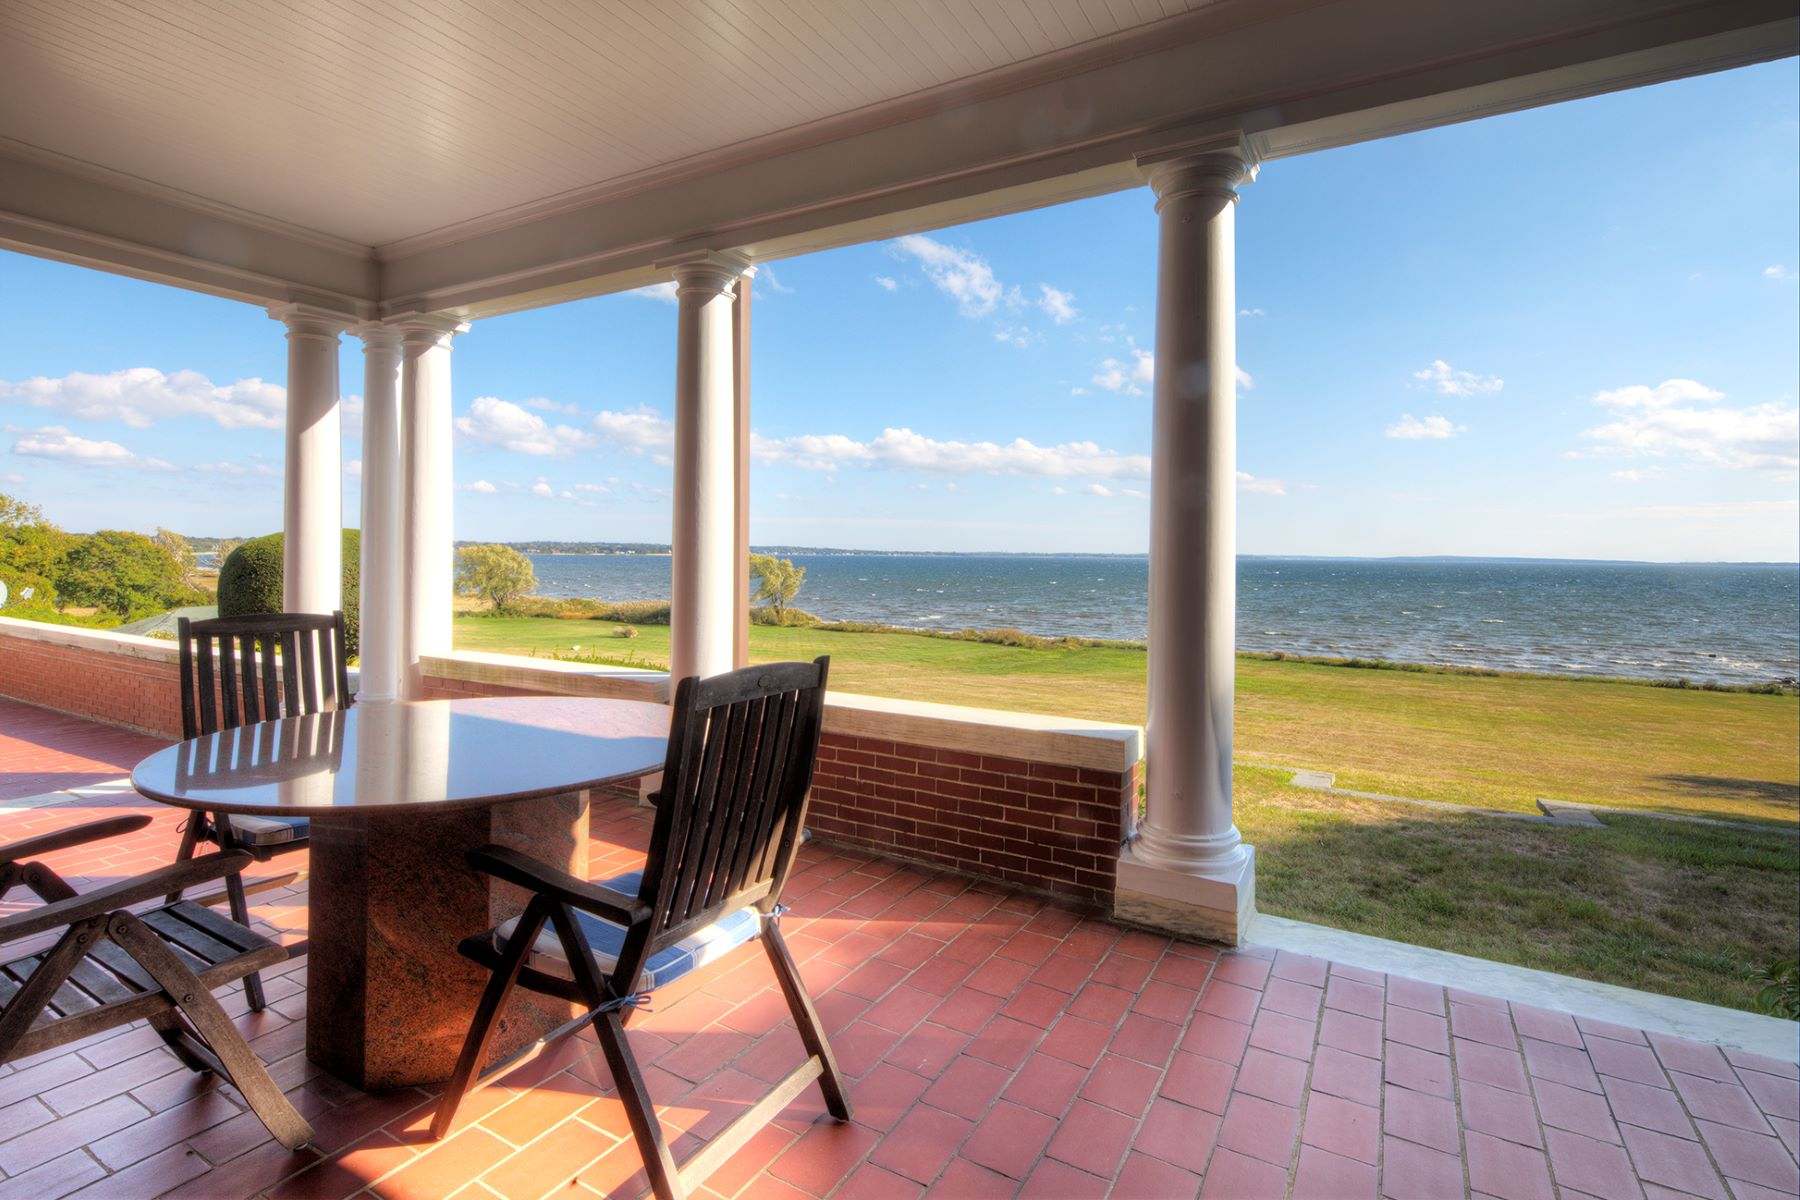 Additional photo for property listing at Classic Waterfront Estate 115 Nayatt Road Barrington, Rhode Island 02806 Estados Unidos